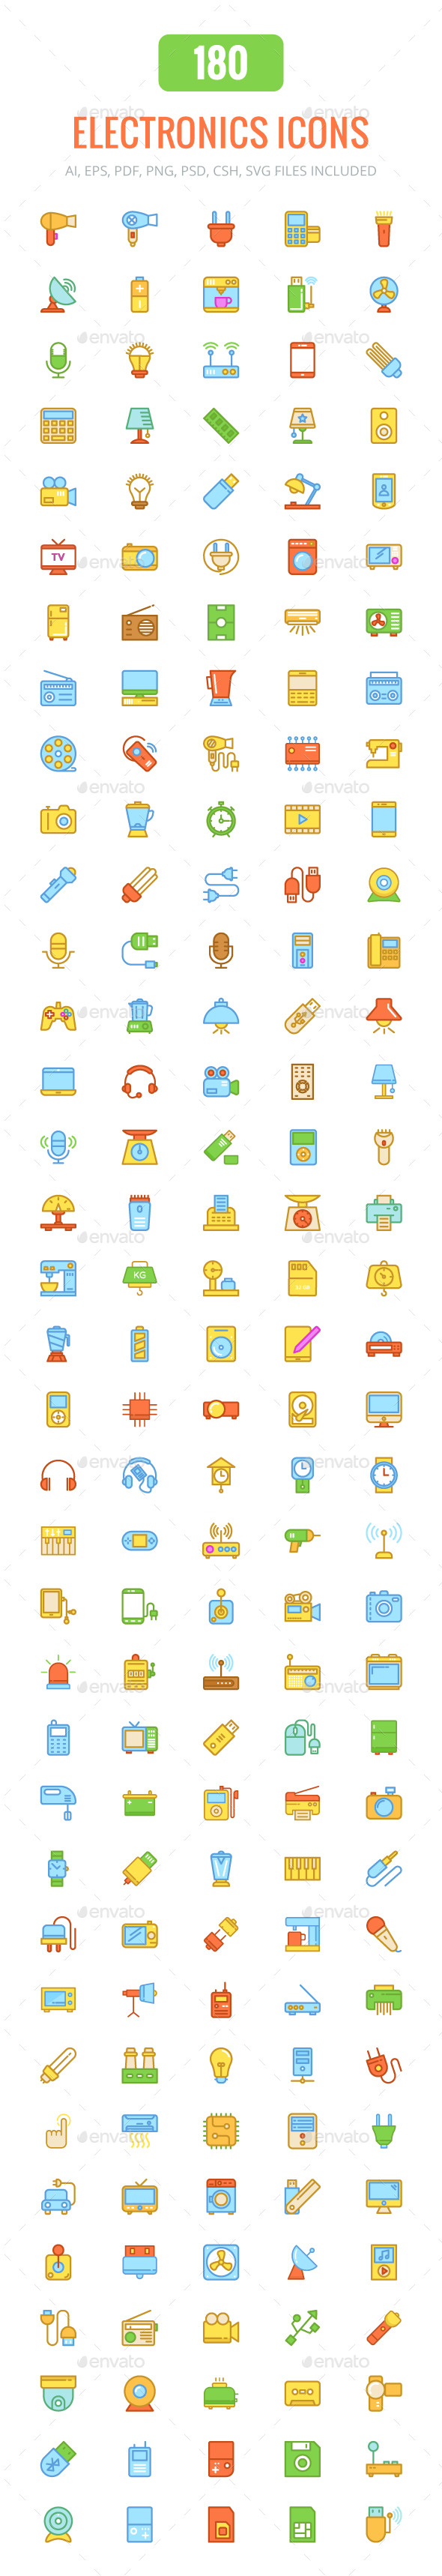 180 Electronics Colored & Line Icons - Icons